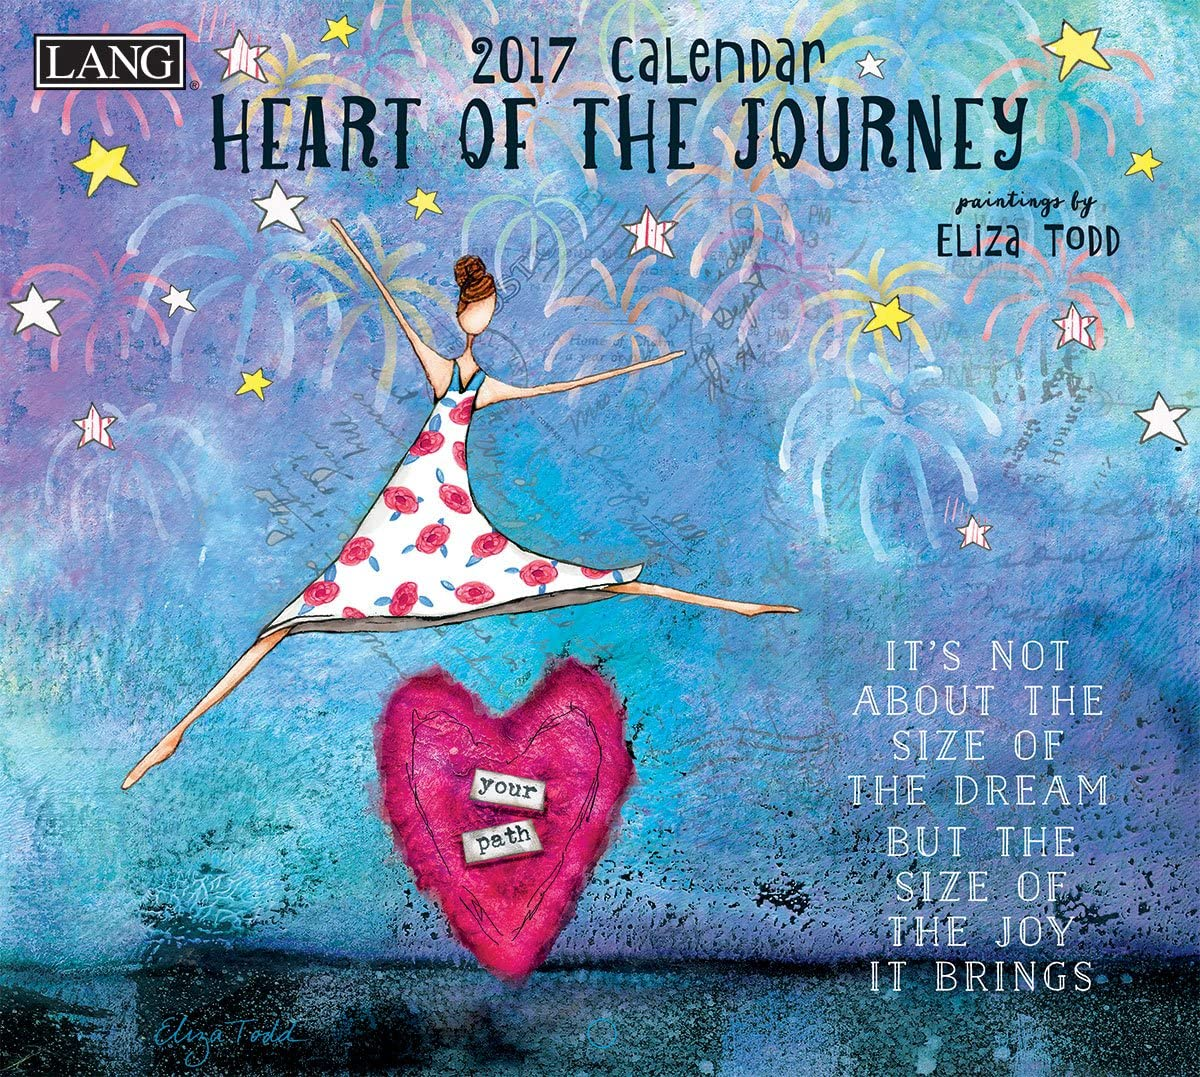 Lang 2017 Heart of The Journey Wall Calendar, 13.375 x 24 inches (17991001983)